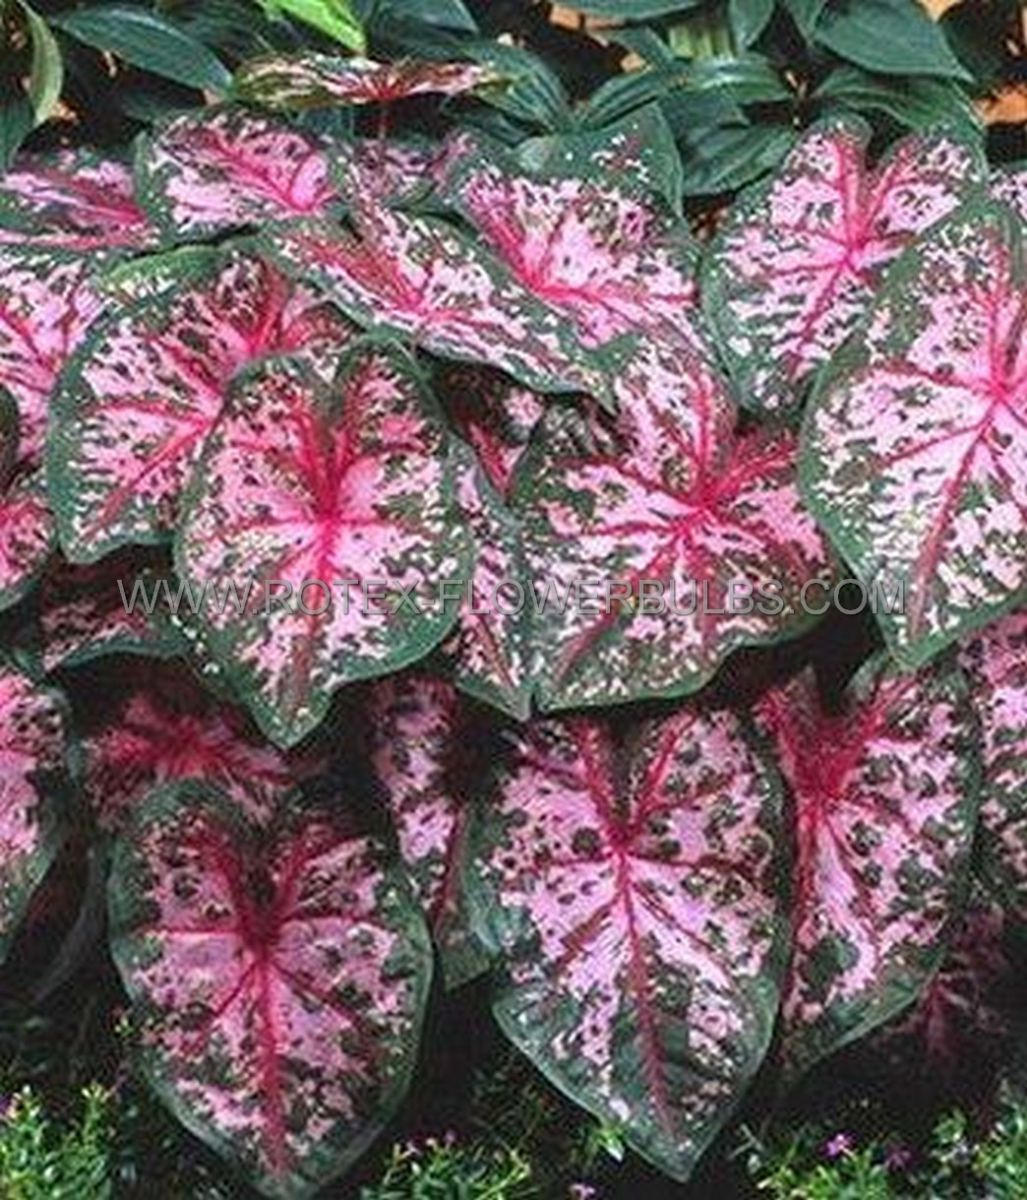 caladium fancy leaved carolyn whorton no2 15 pkgsx 4